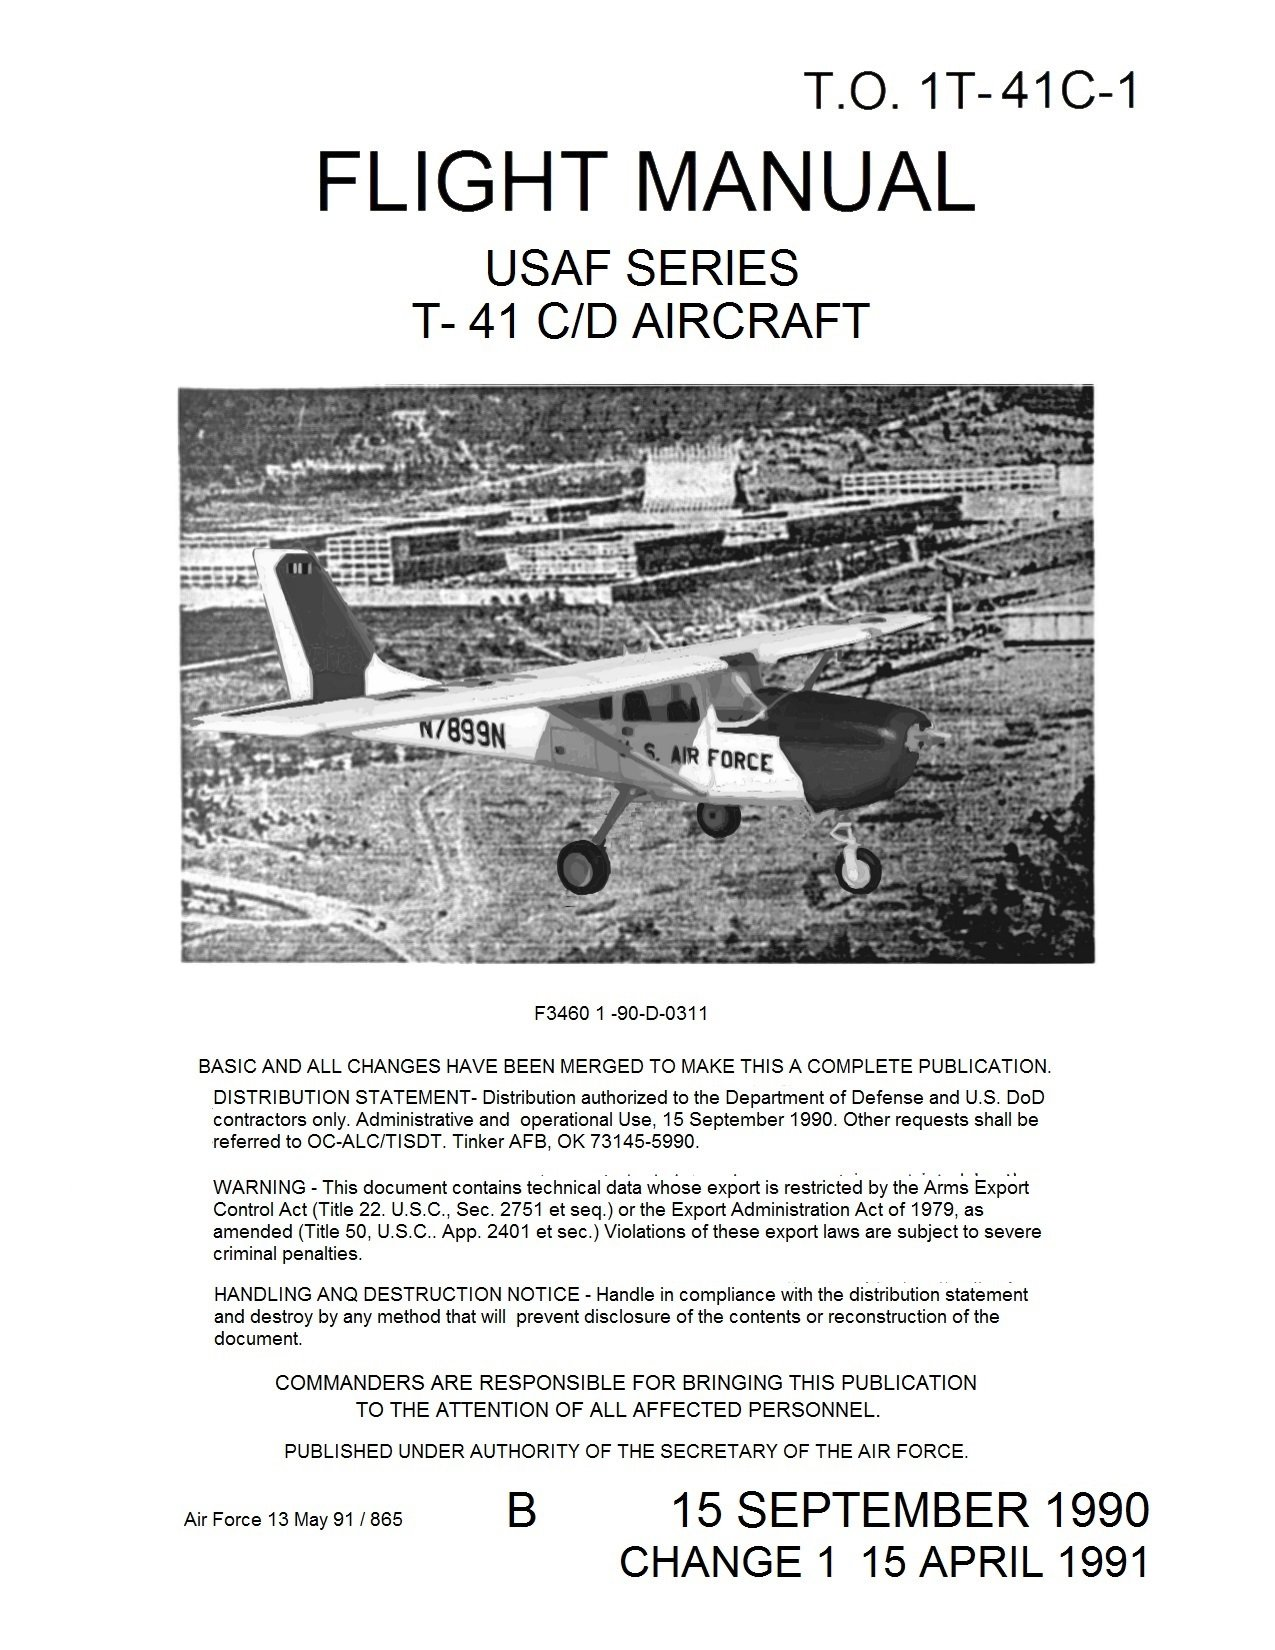 Download T-41 C D Flight Manual Pilot's Operating Handbook Cessna T-41 Mescalero with Normal and Emergency Procedures, add't Specs. [ReImaged from original for Clarity. Loose Leaf Facsimile Edition.] pdf